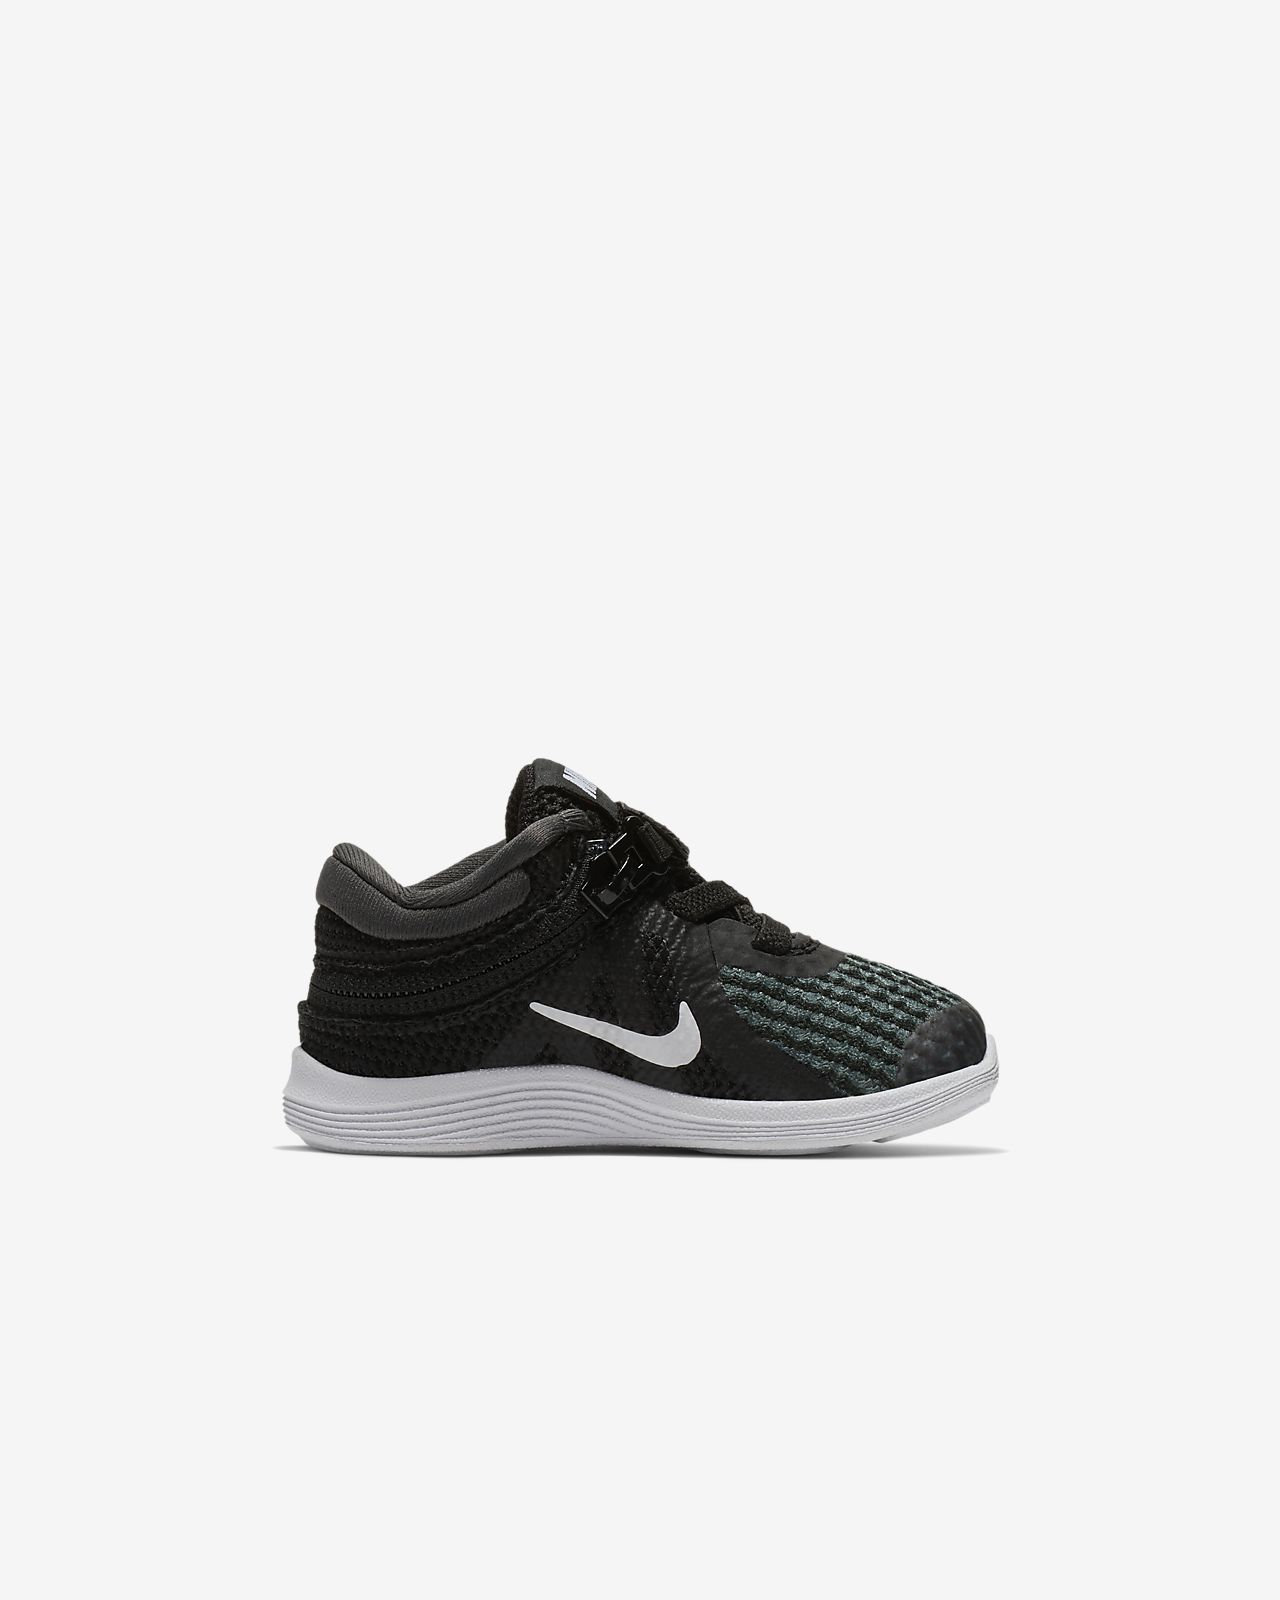 Nike Revolution 4 FlyEase Infant Toddler Shoe Nike